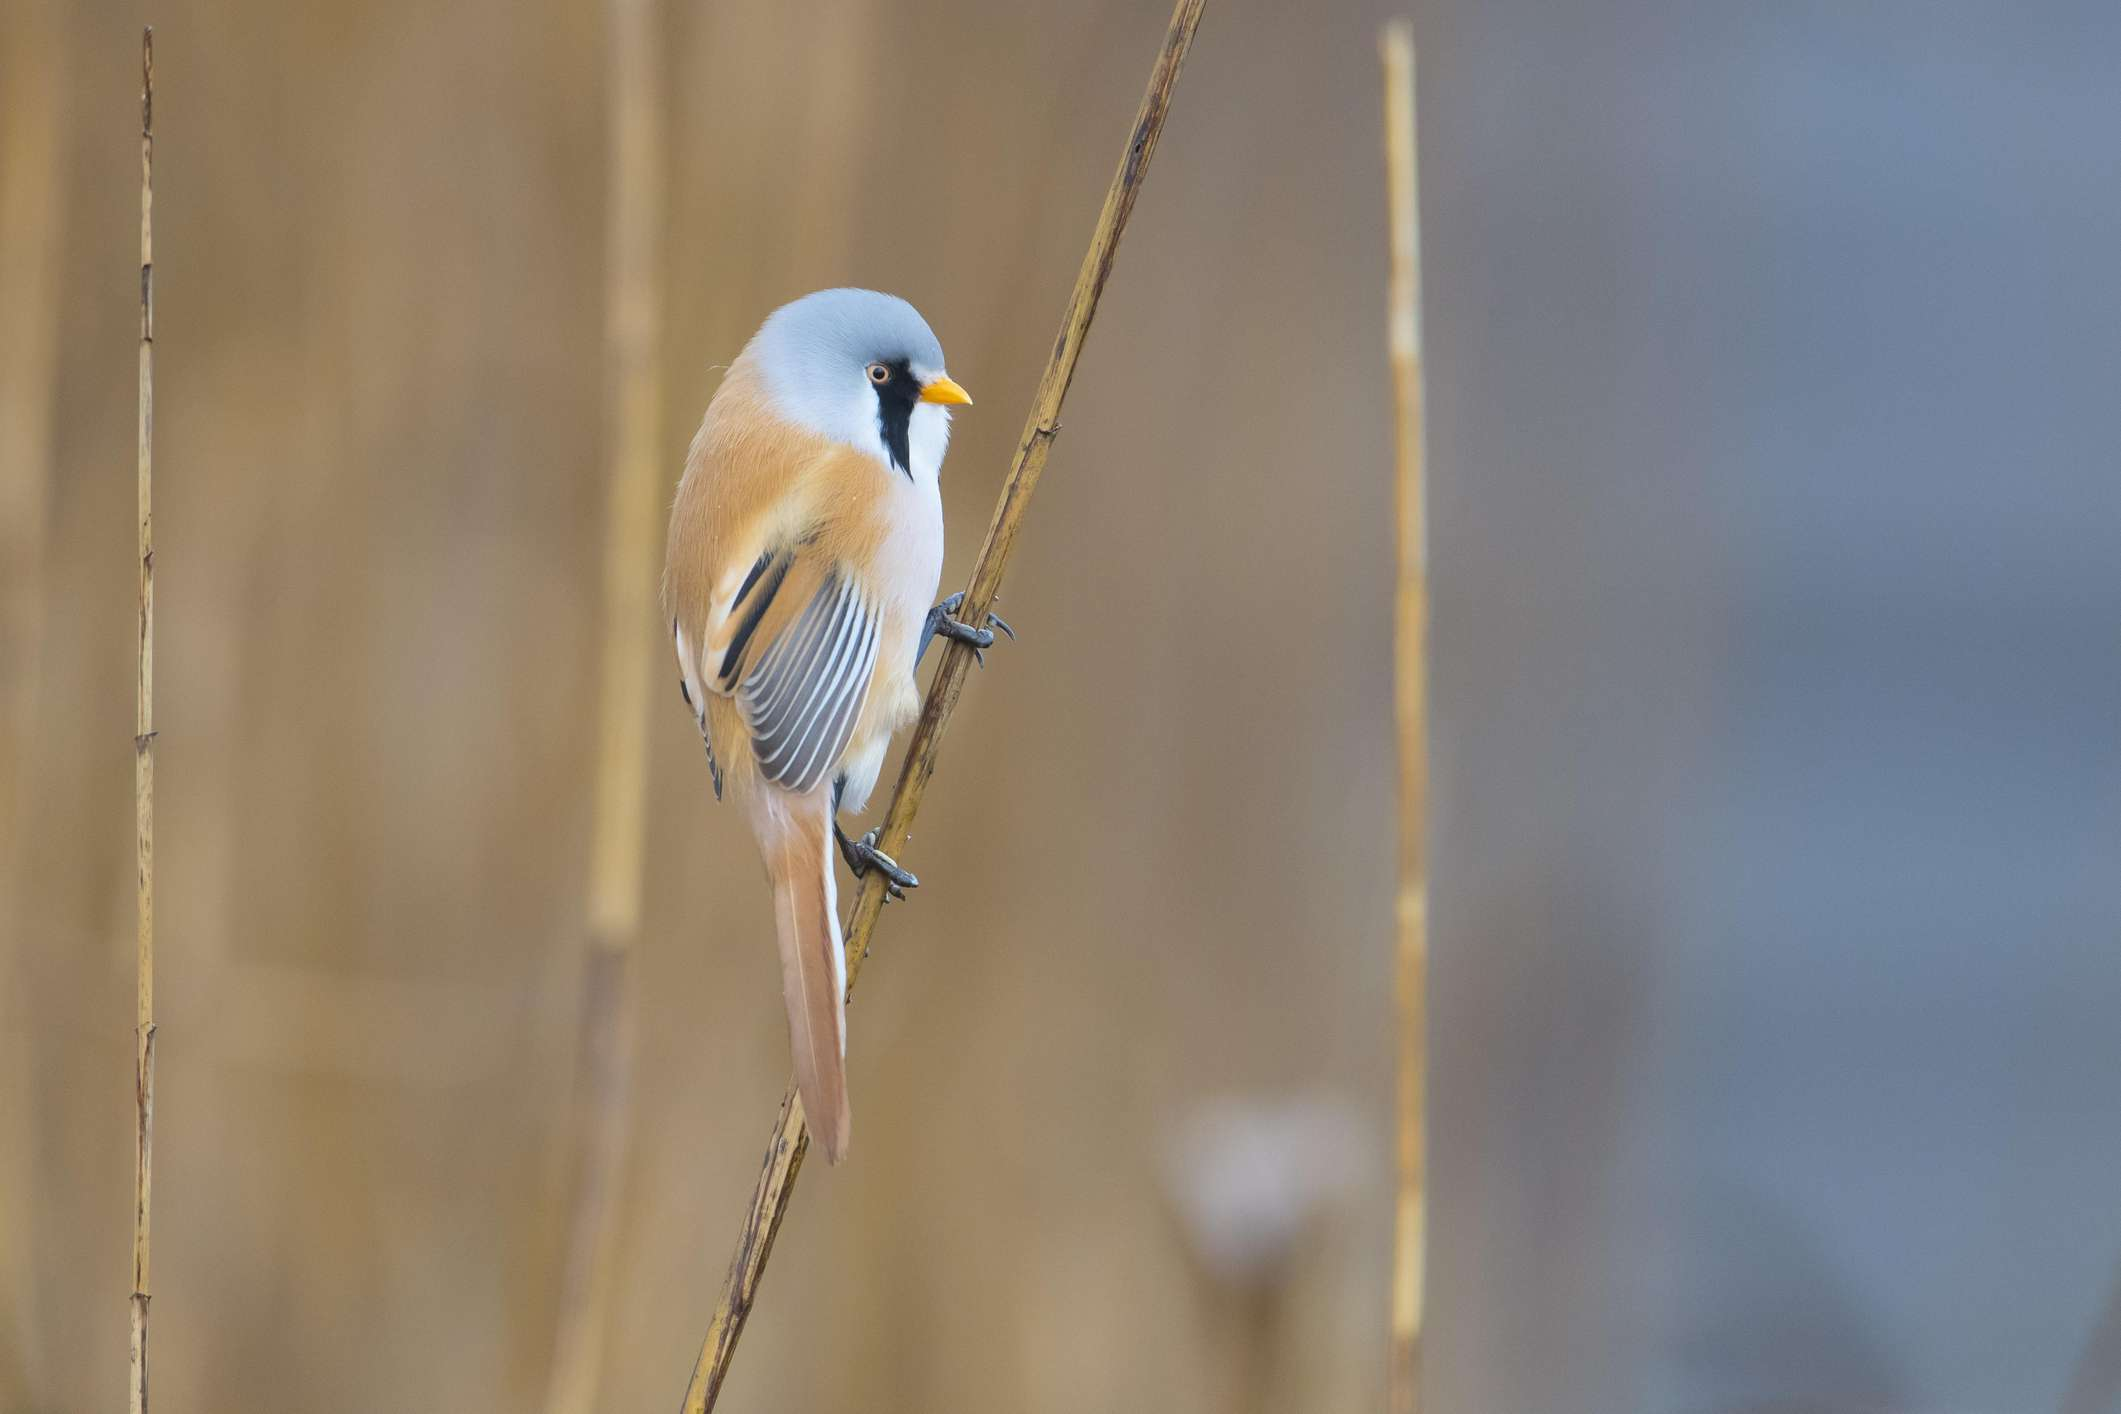 Bearded tit on a reed stalk